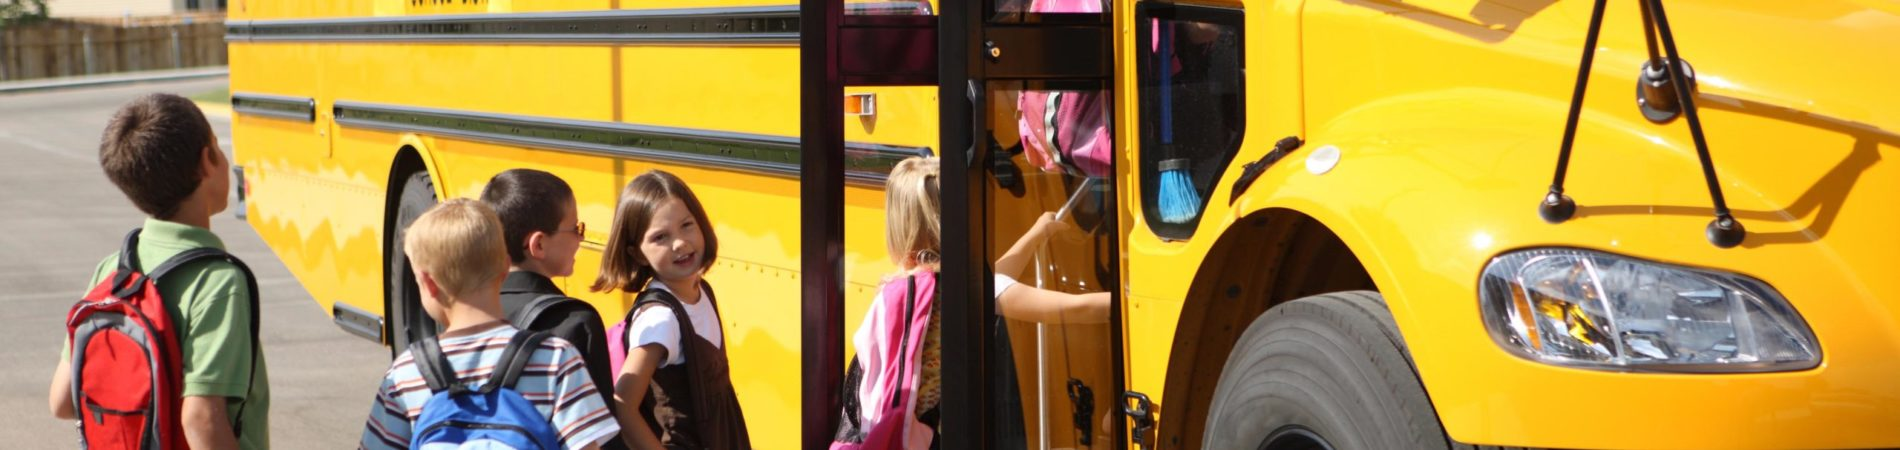 School-Bus-with-Kids-web-size